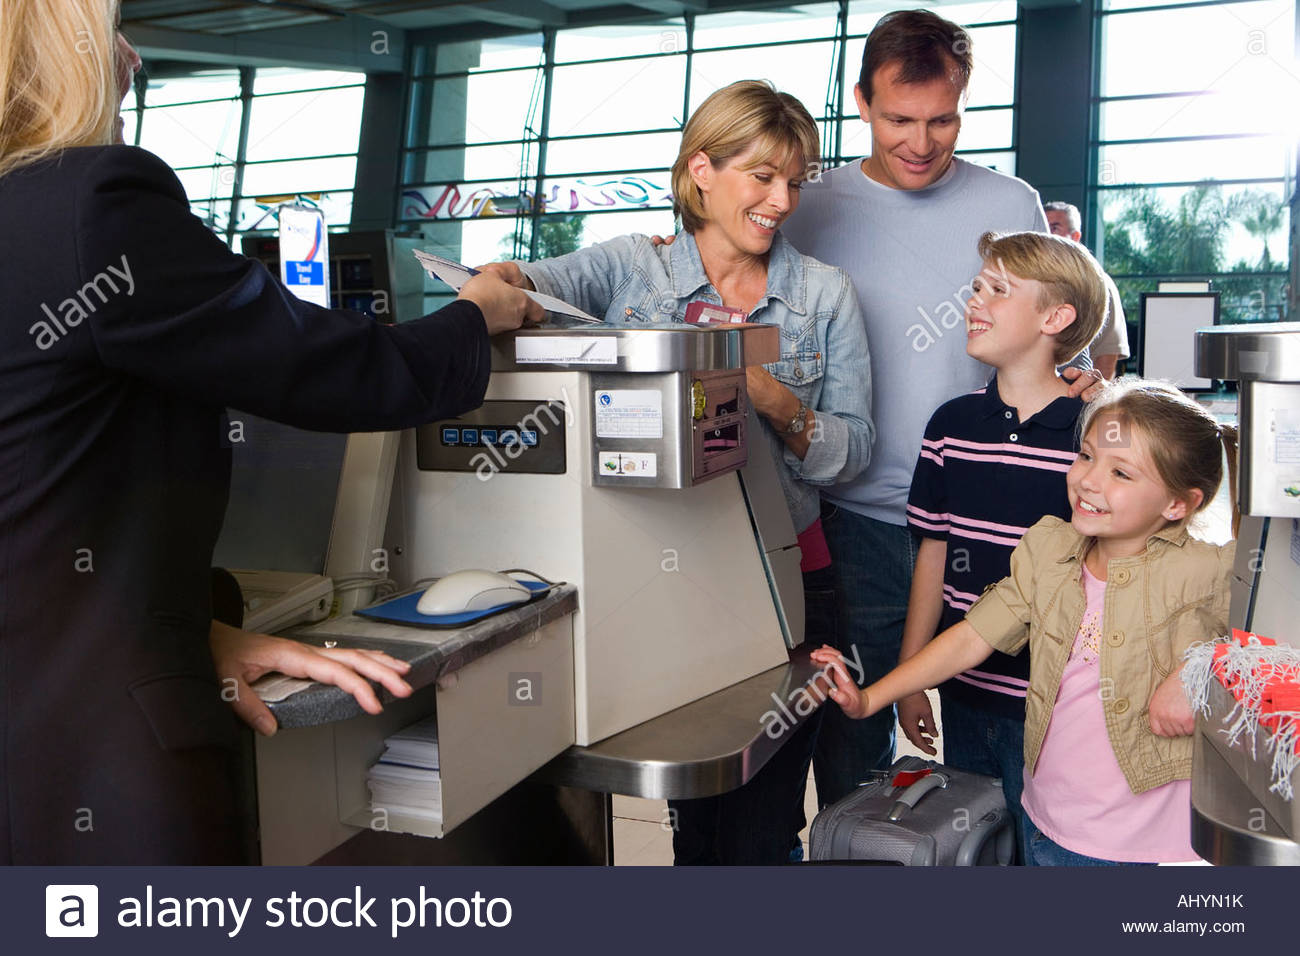 Family checking in at airport check-in counter, woman passing tickets to female airline check-in attendant, smiling - Stock Image